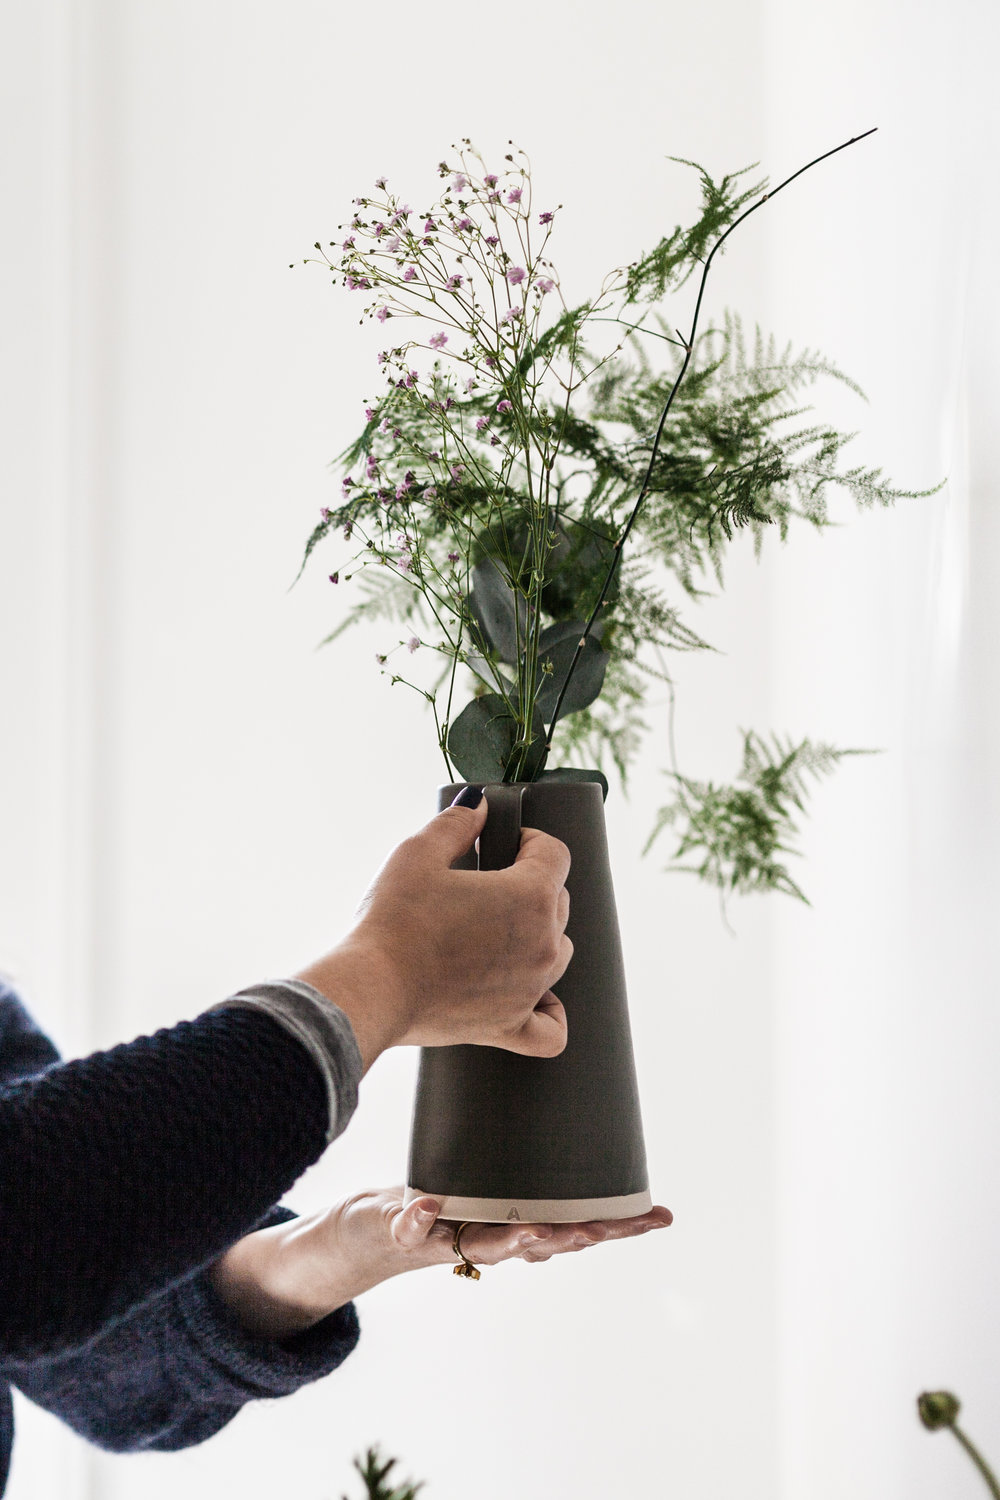 Jette Virdi, based in Dublin and London teaches a Floral Workshop